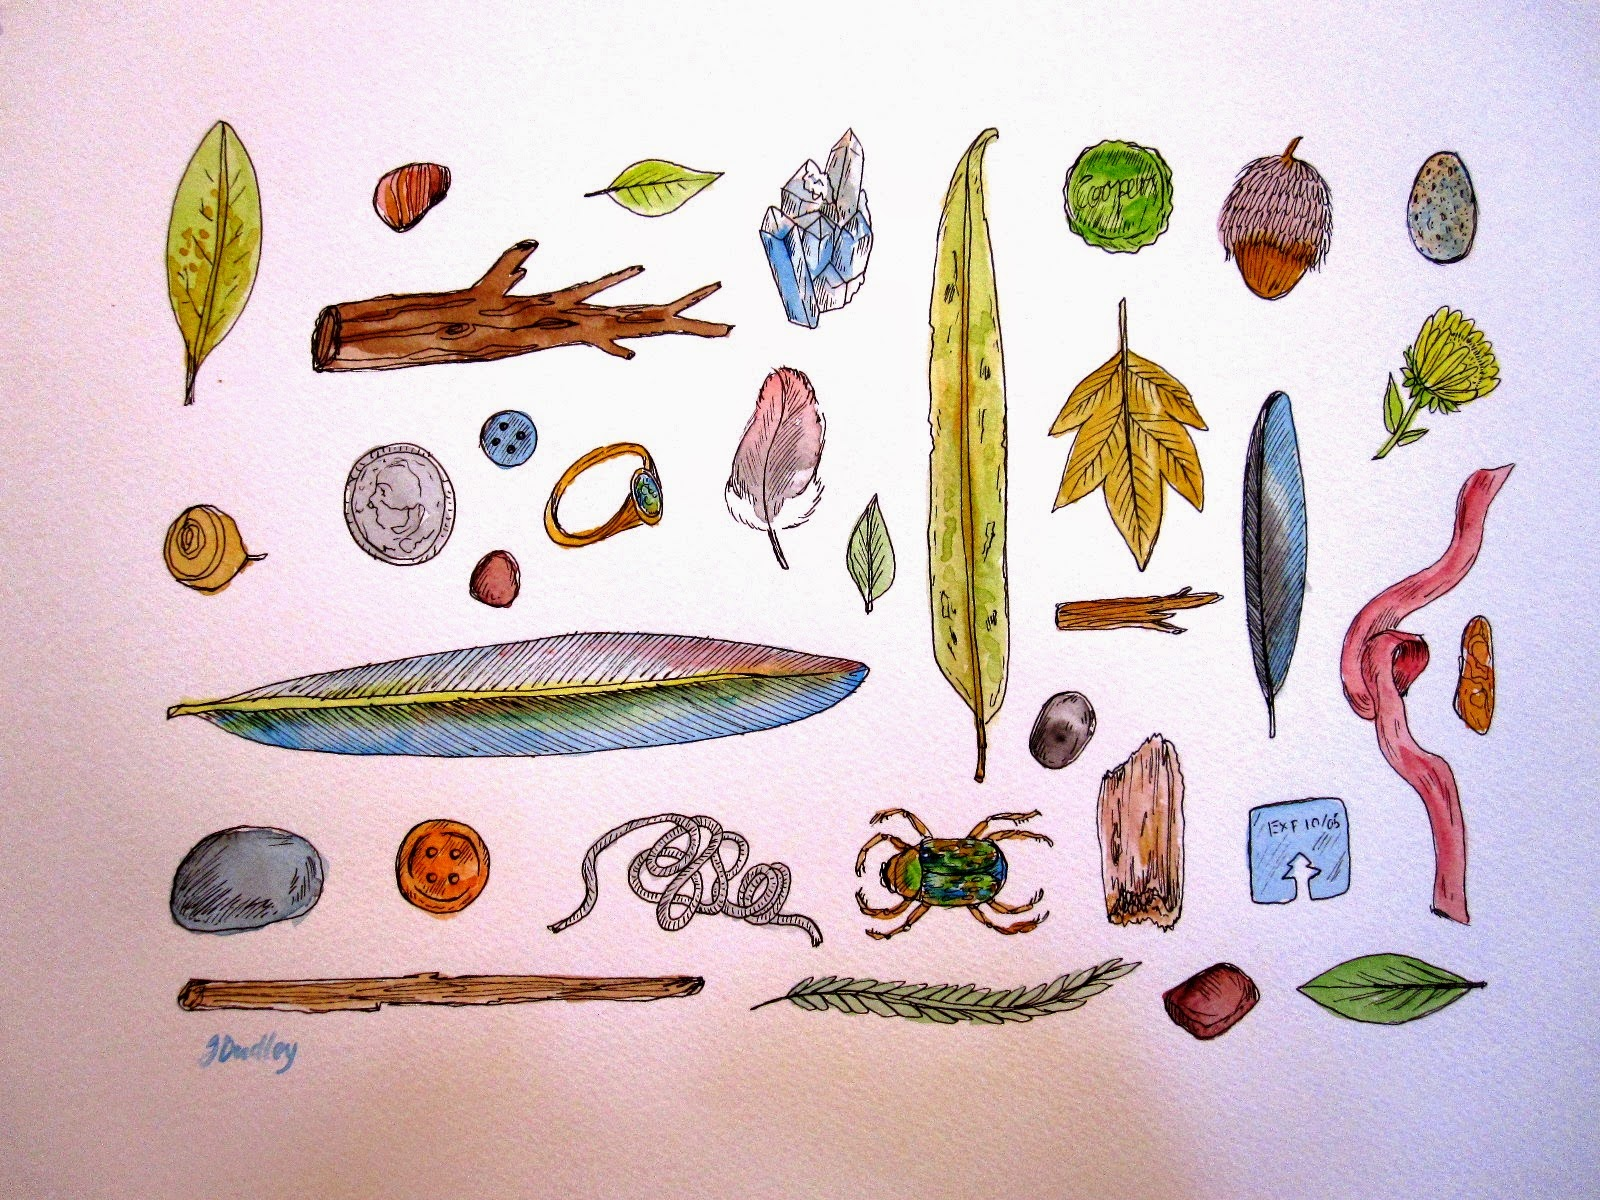 Coloured sketches of  range of little things including leaves, shells, feathers and bugs.